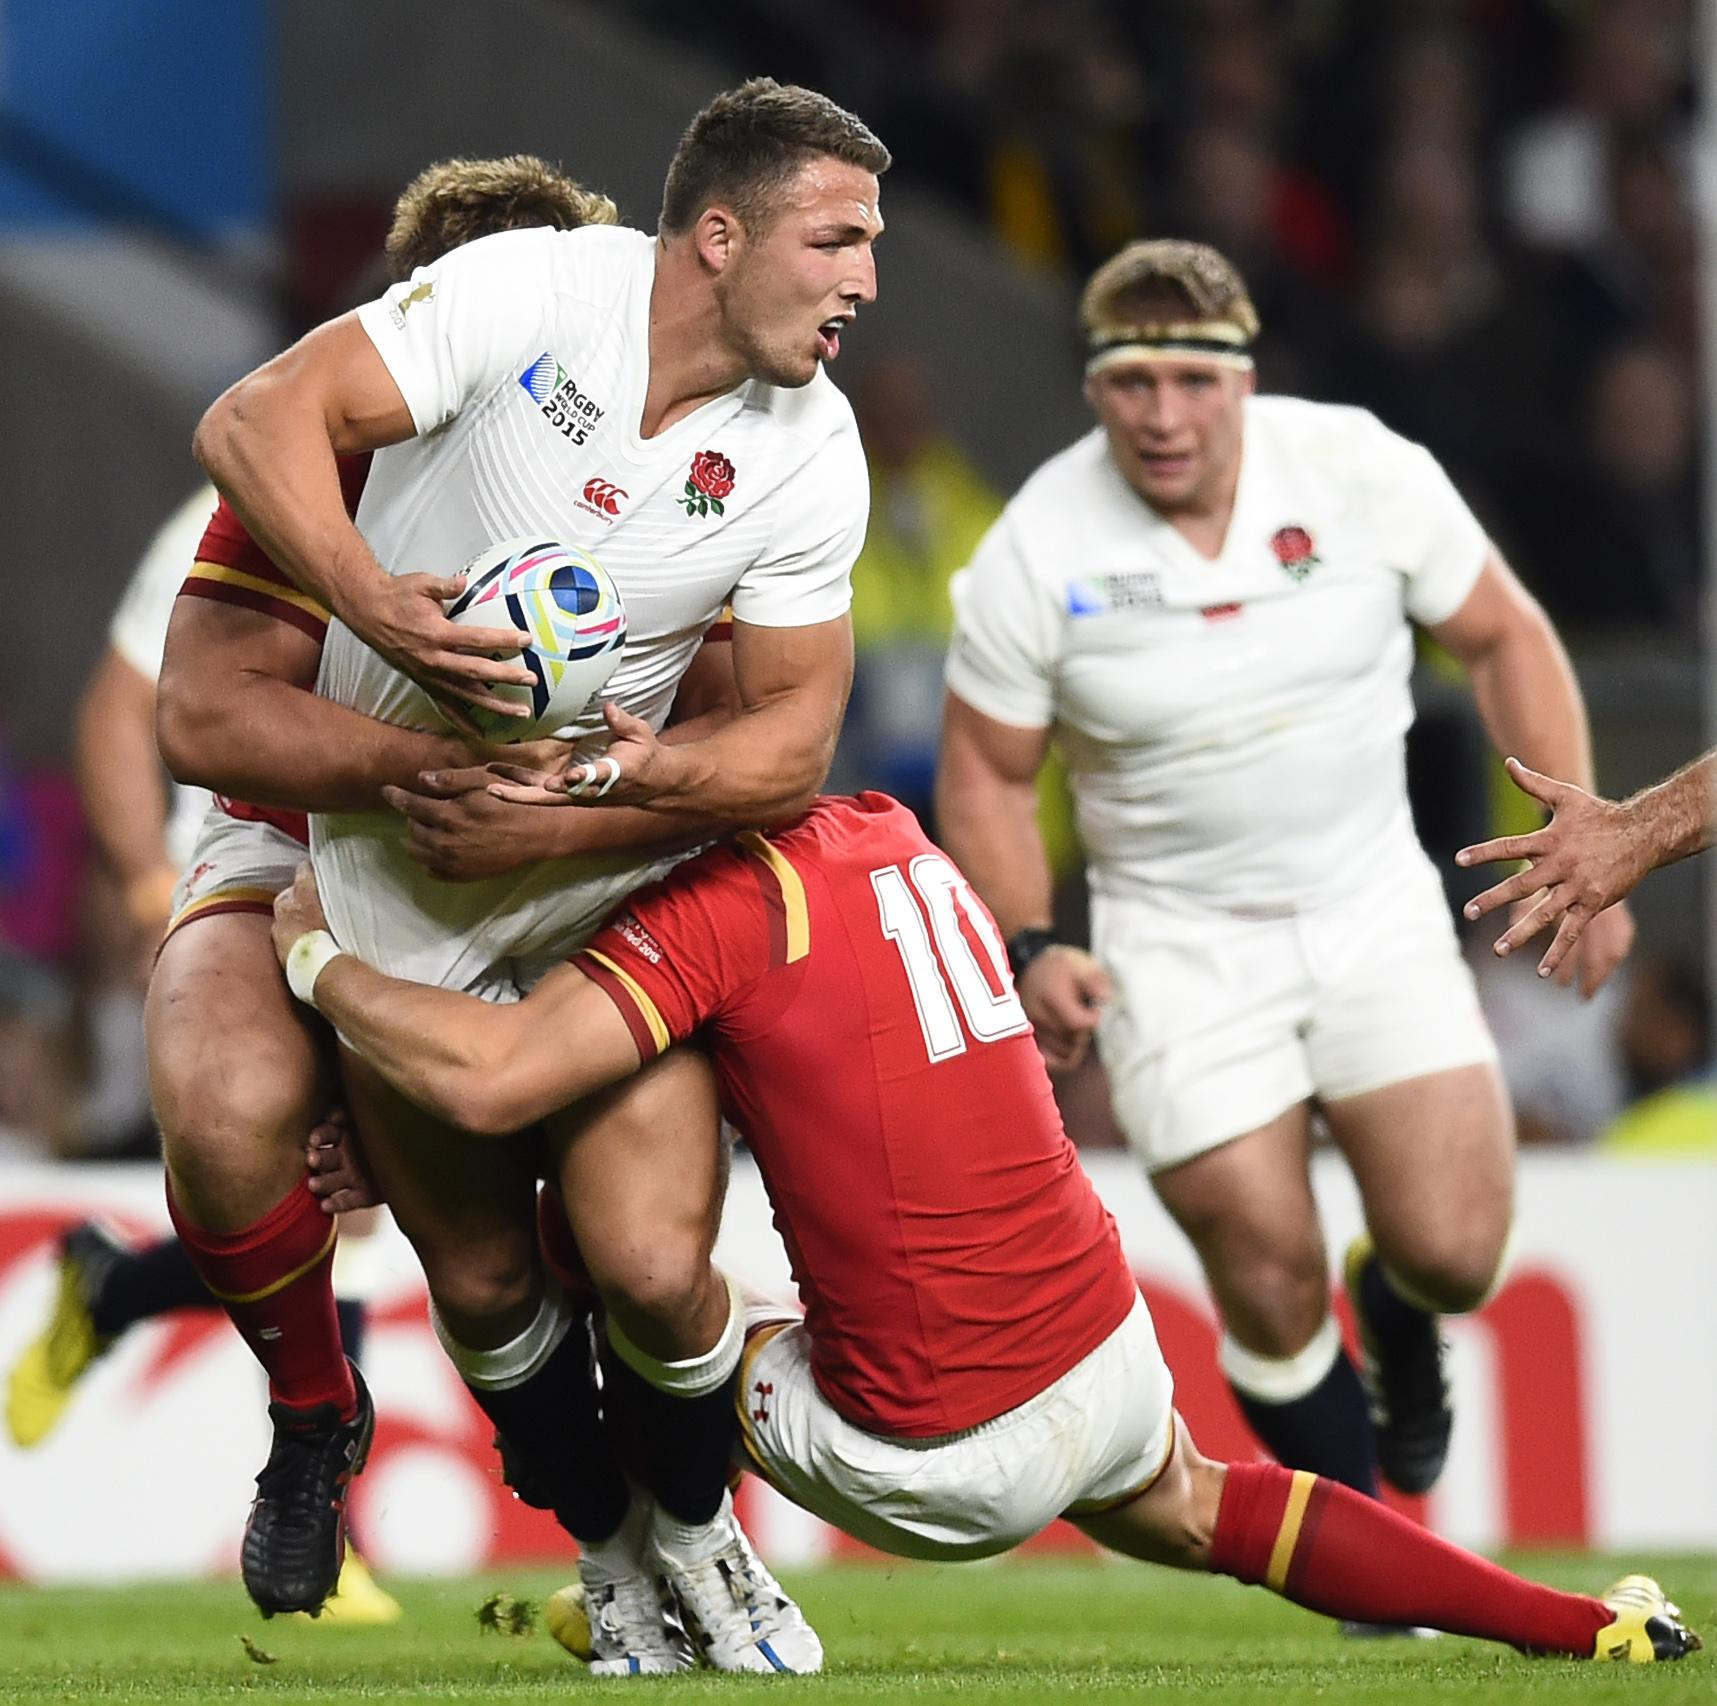 Burgess swapped codes and played rugby union for England in the 2015 World Cup